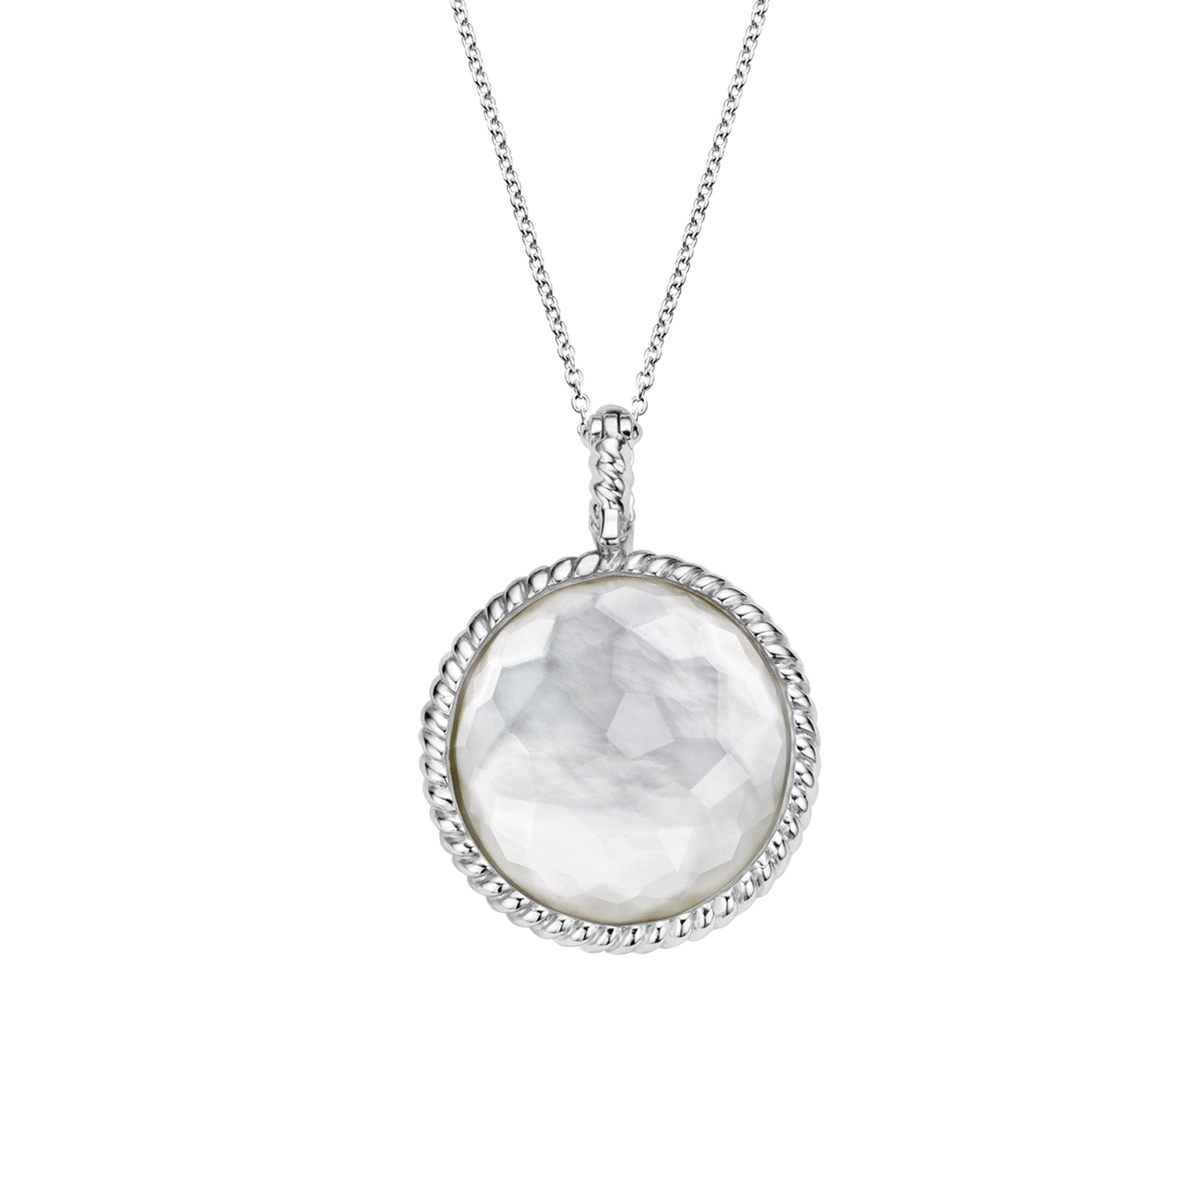 TI SENTO Sterling Silver Pendant with Mother of Pearl Doublet and Cubic Zirconia's